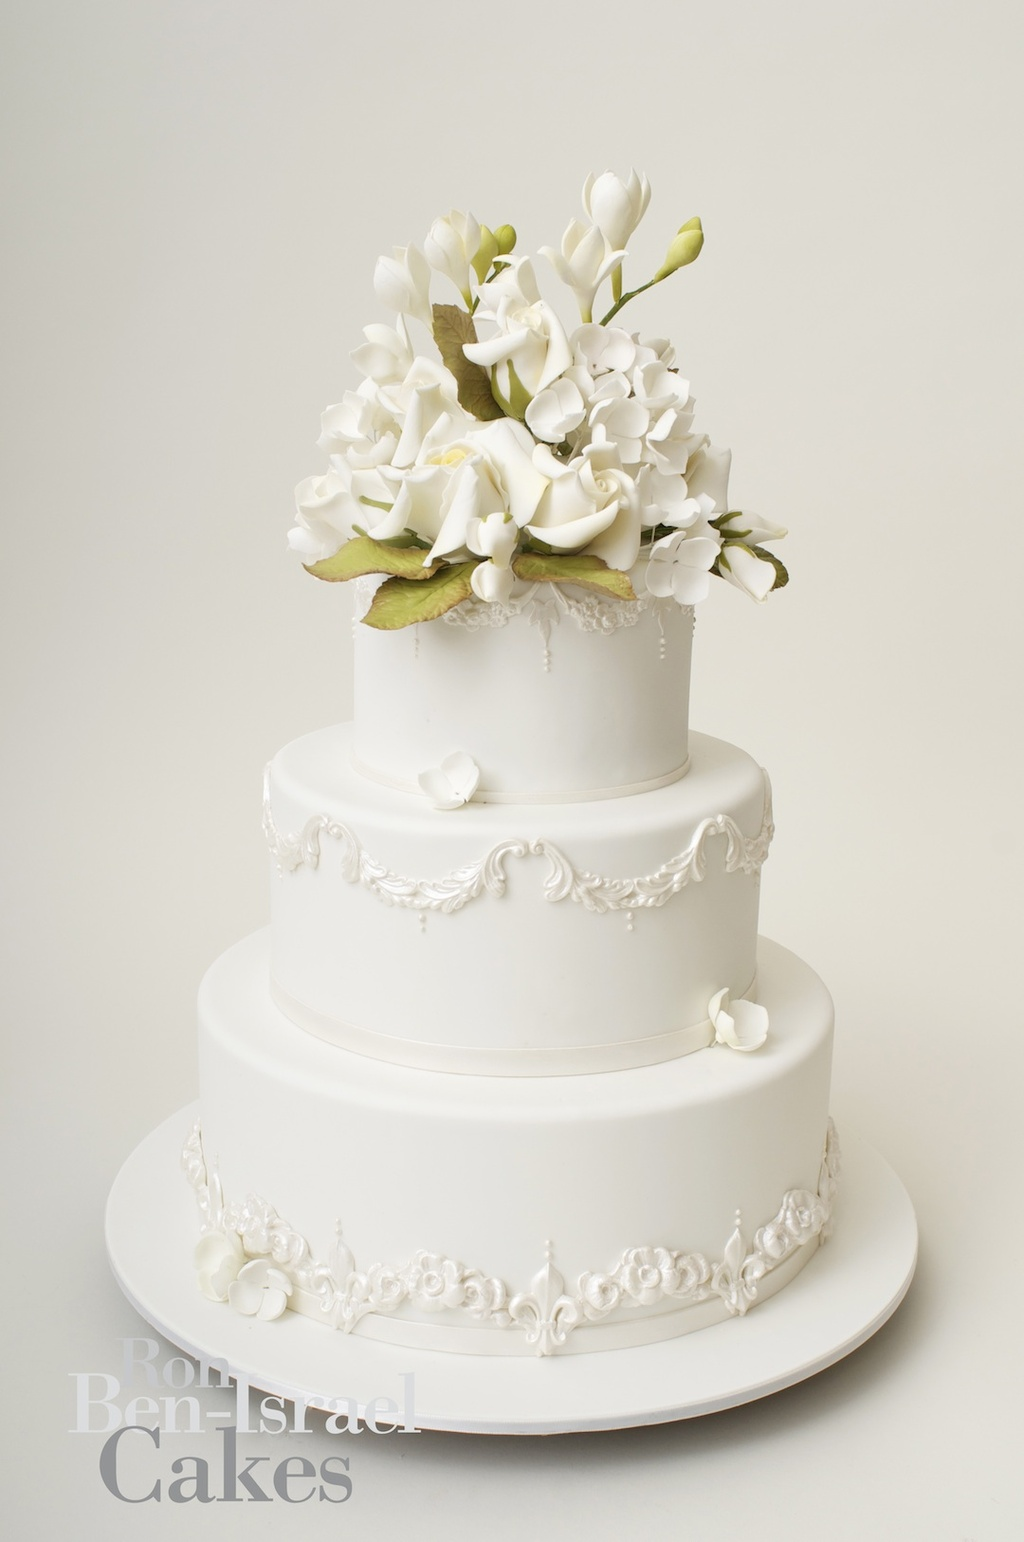 CakeinspirationRonBenIsrealweddingcakesclassicwhite3tier - 3 Tier Wedding Cakes